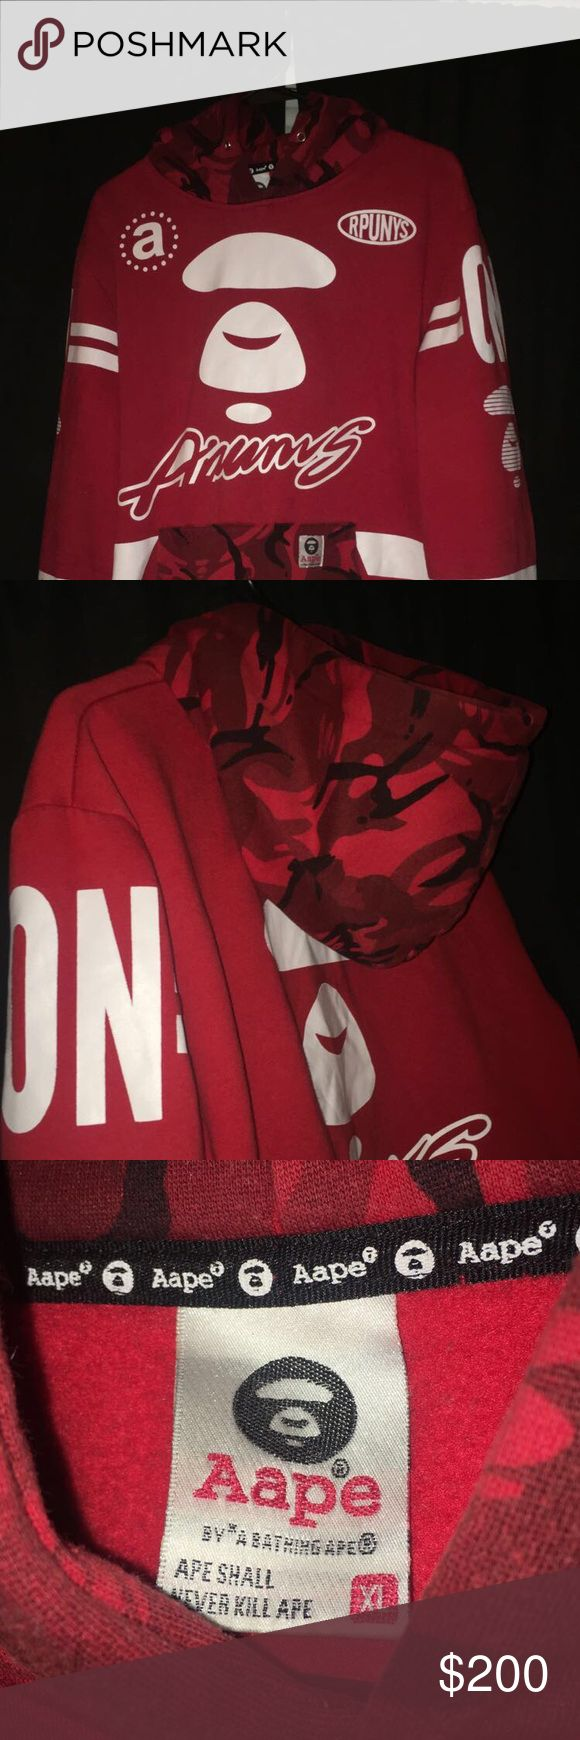 Bape (Aape) hoodie 8/10 condition. Size xl but Bape runs small so fits like a L. Only 10 in each size were mad. Only have seen one at round two in same condition for $340. bape Tops Sweatshirts & Hoodies